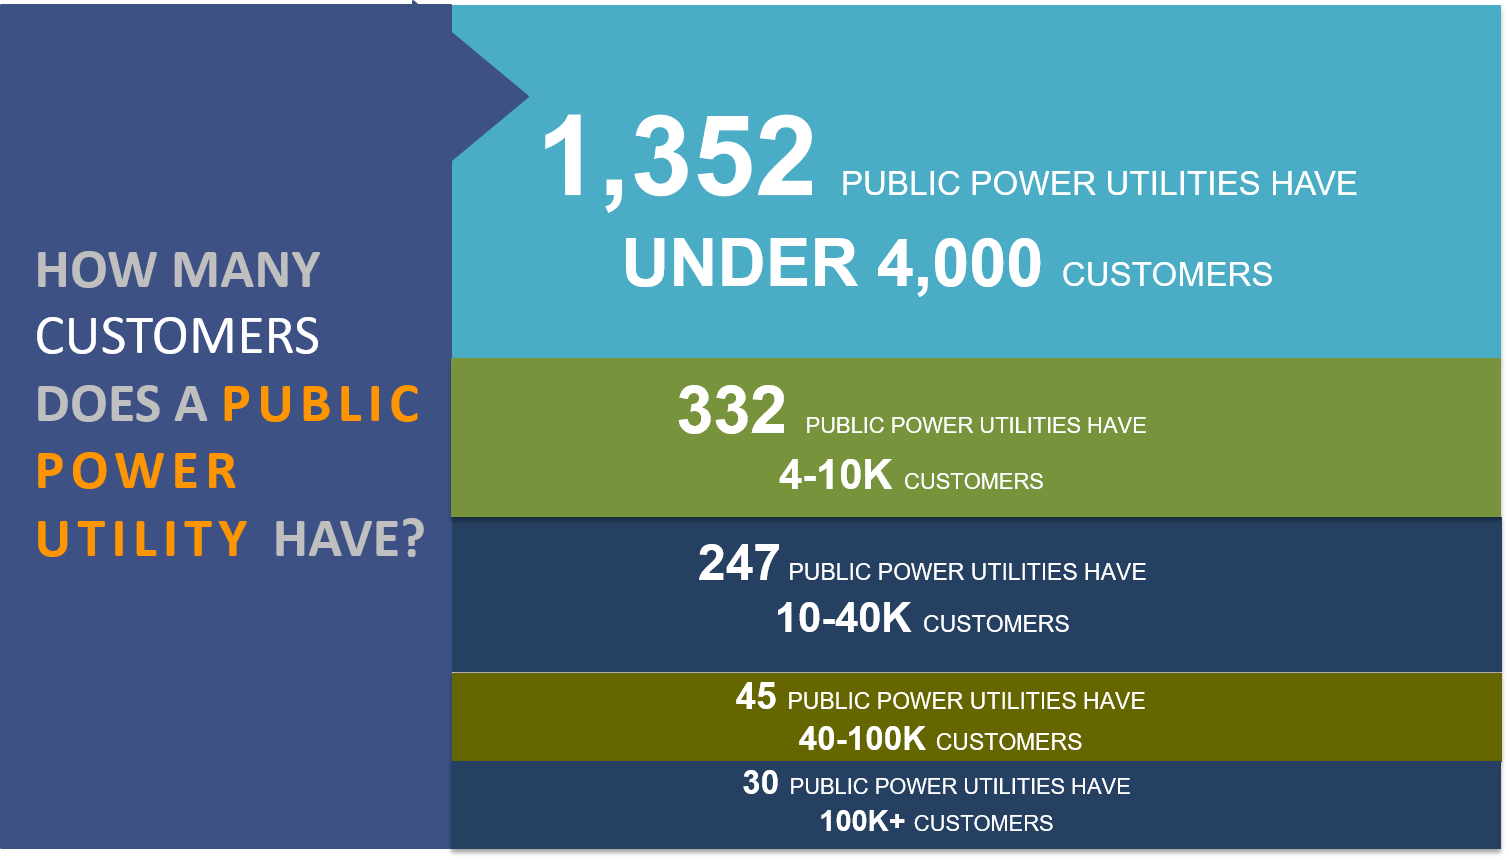 Most publicpower utilities serve less than 4,000 customers